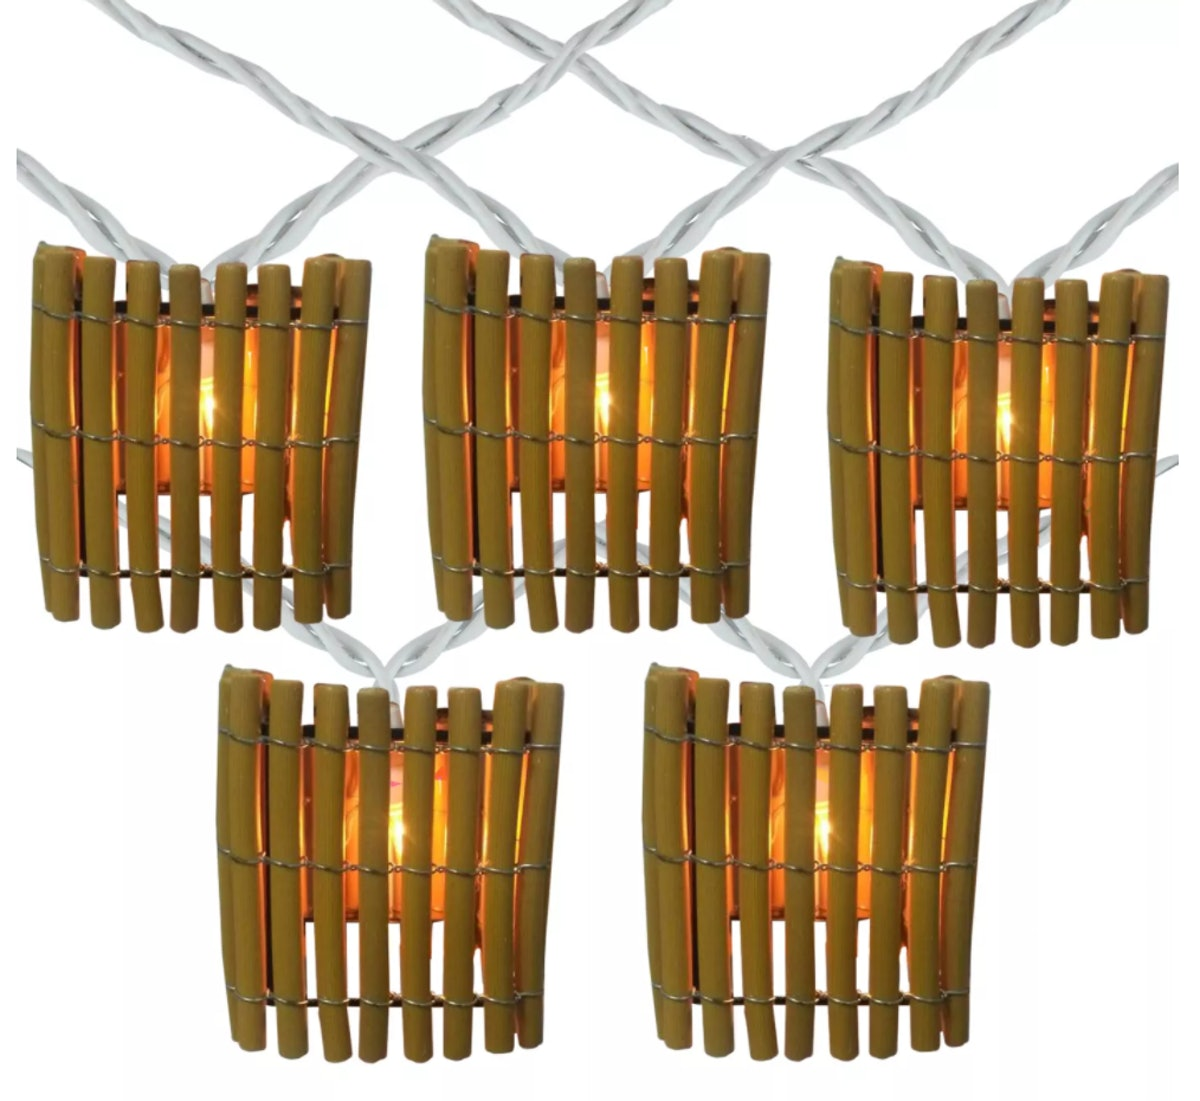 Northlight 10-Count Brown Tropical Bamboo Outdoor Patio String Light Set